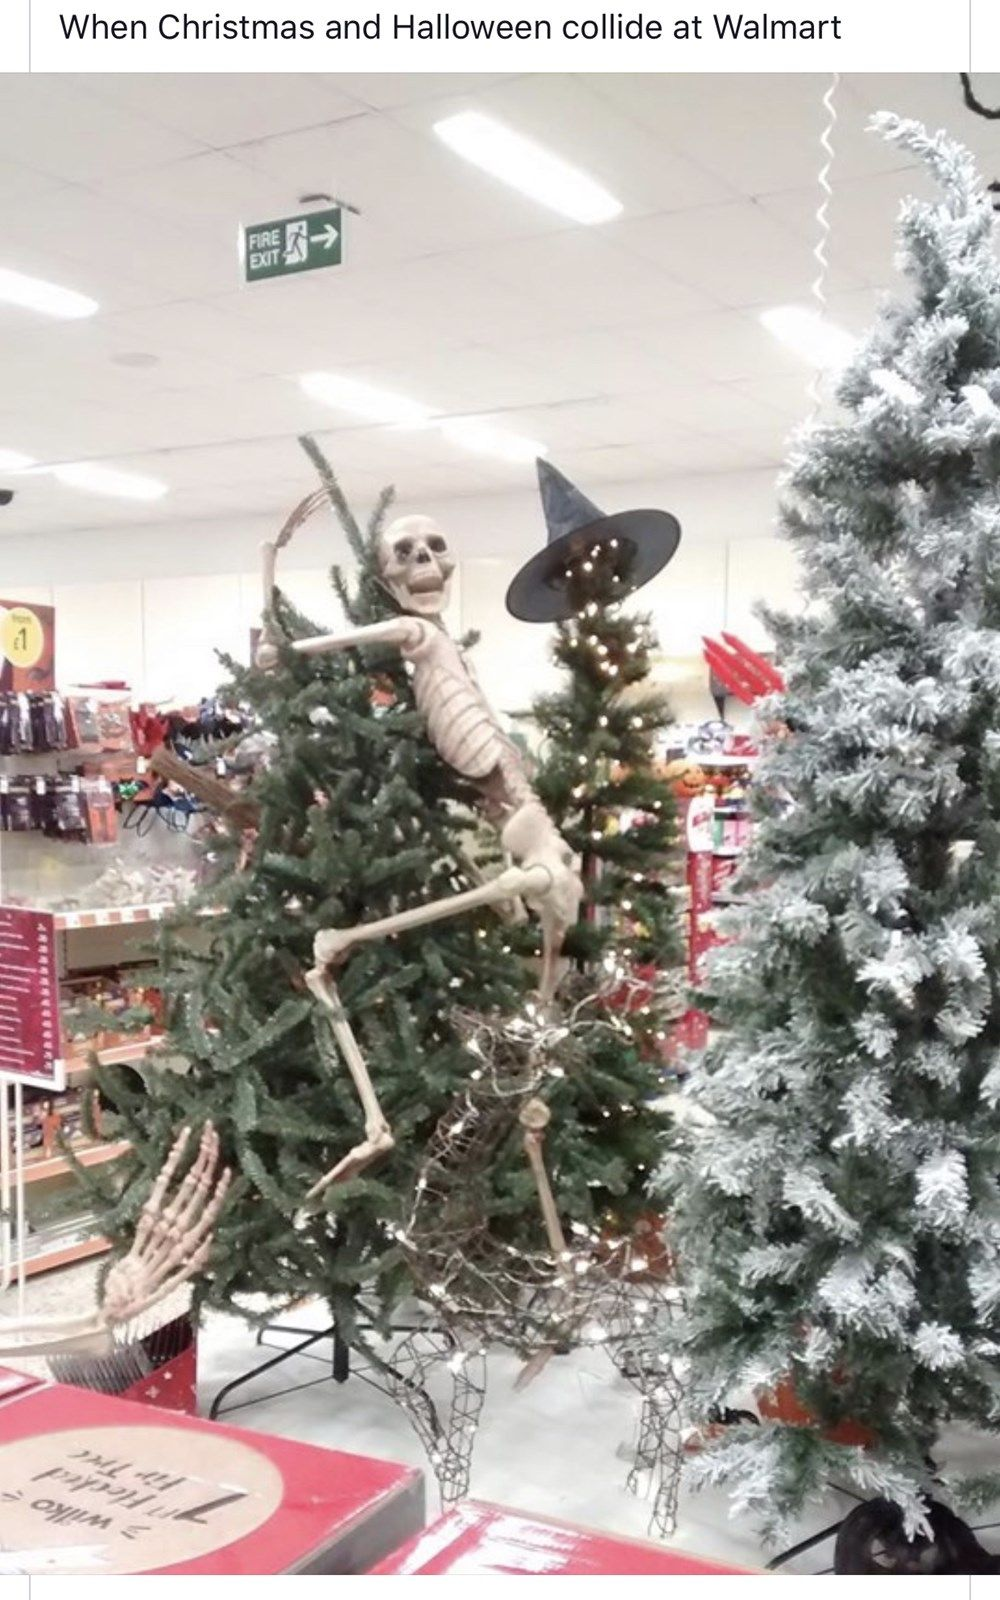 Comedy Filled Posts That Pack A Punch Christmas Pranks Christmas Decorations Funny Pictures